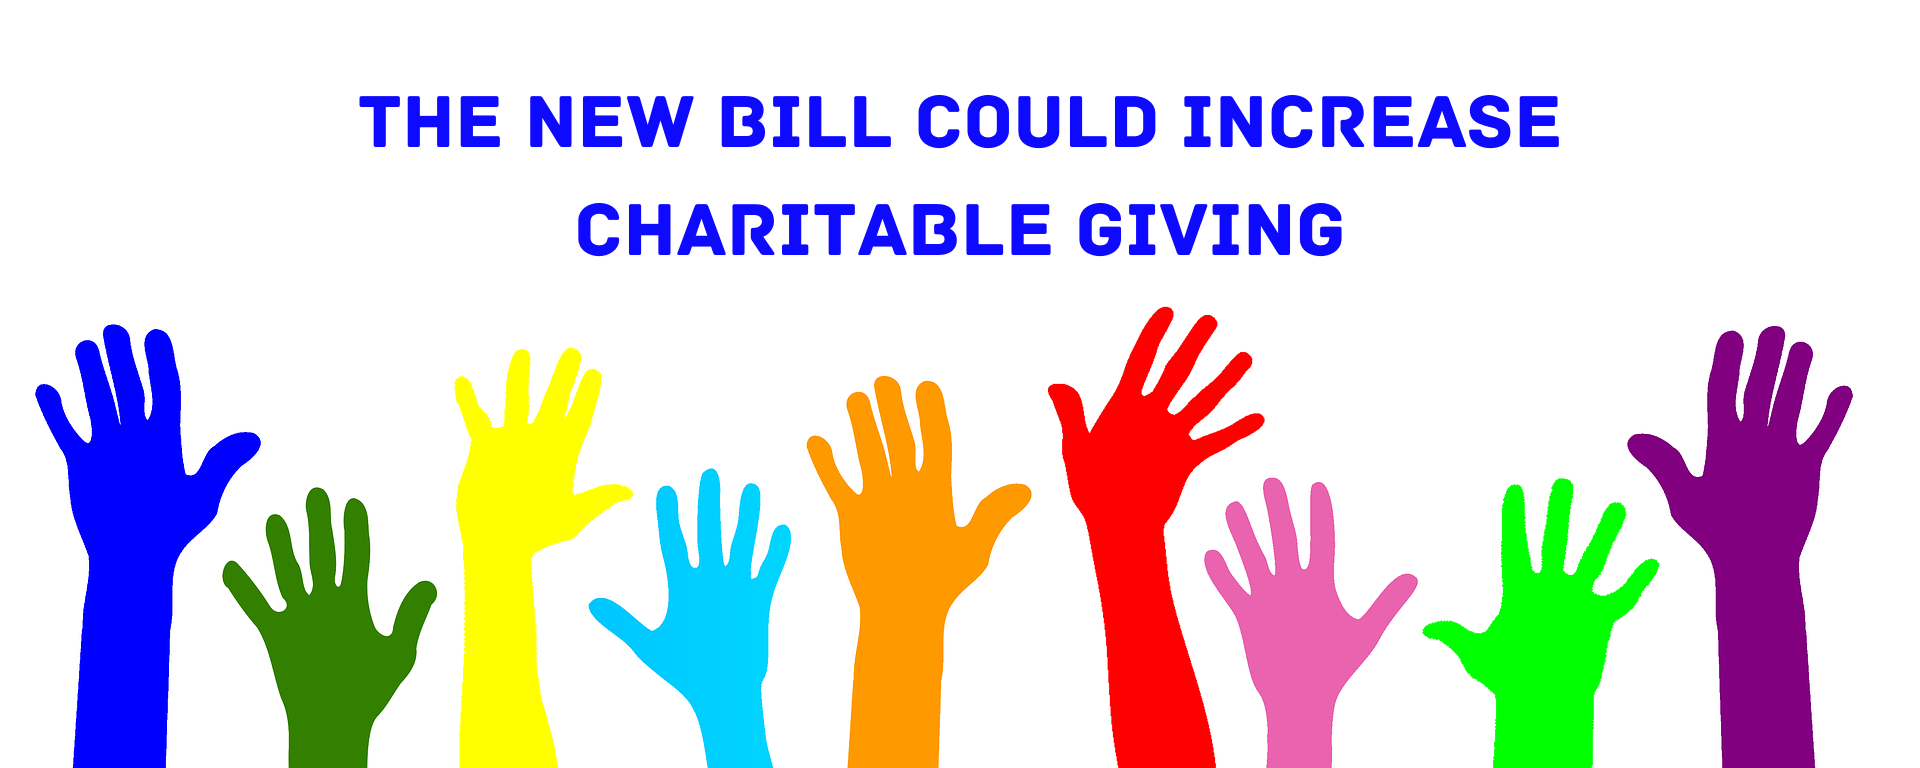 The New Bill could increase Charitable Giving